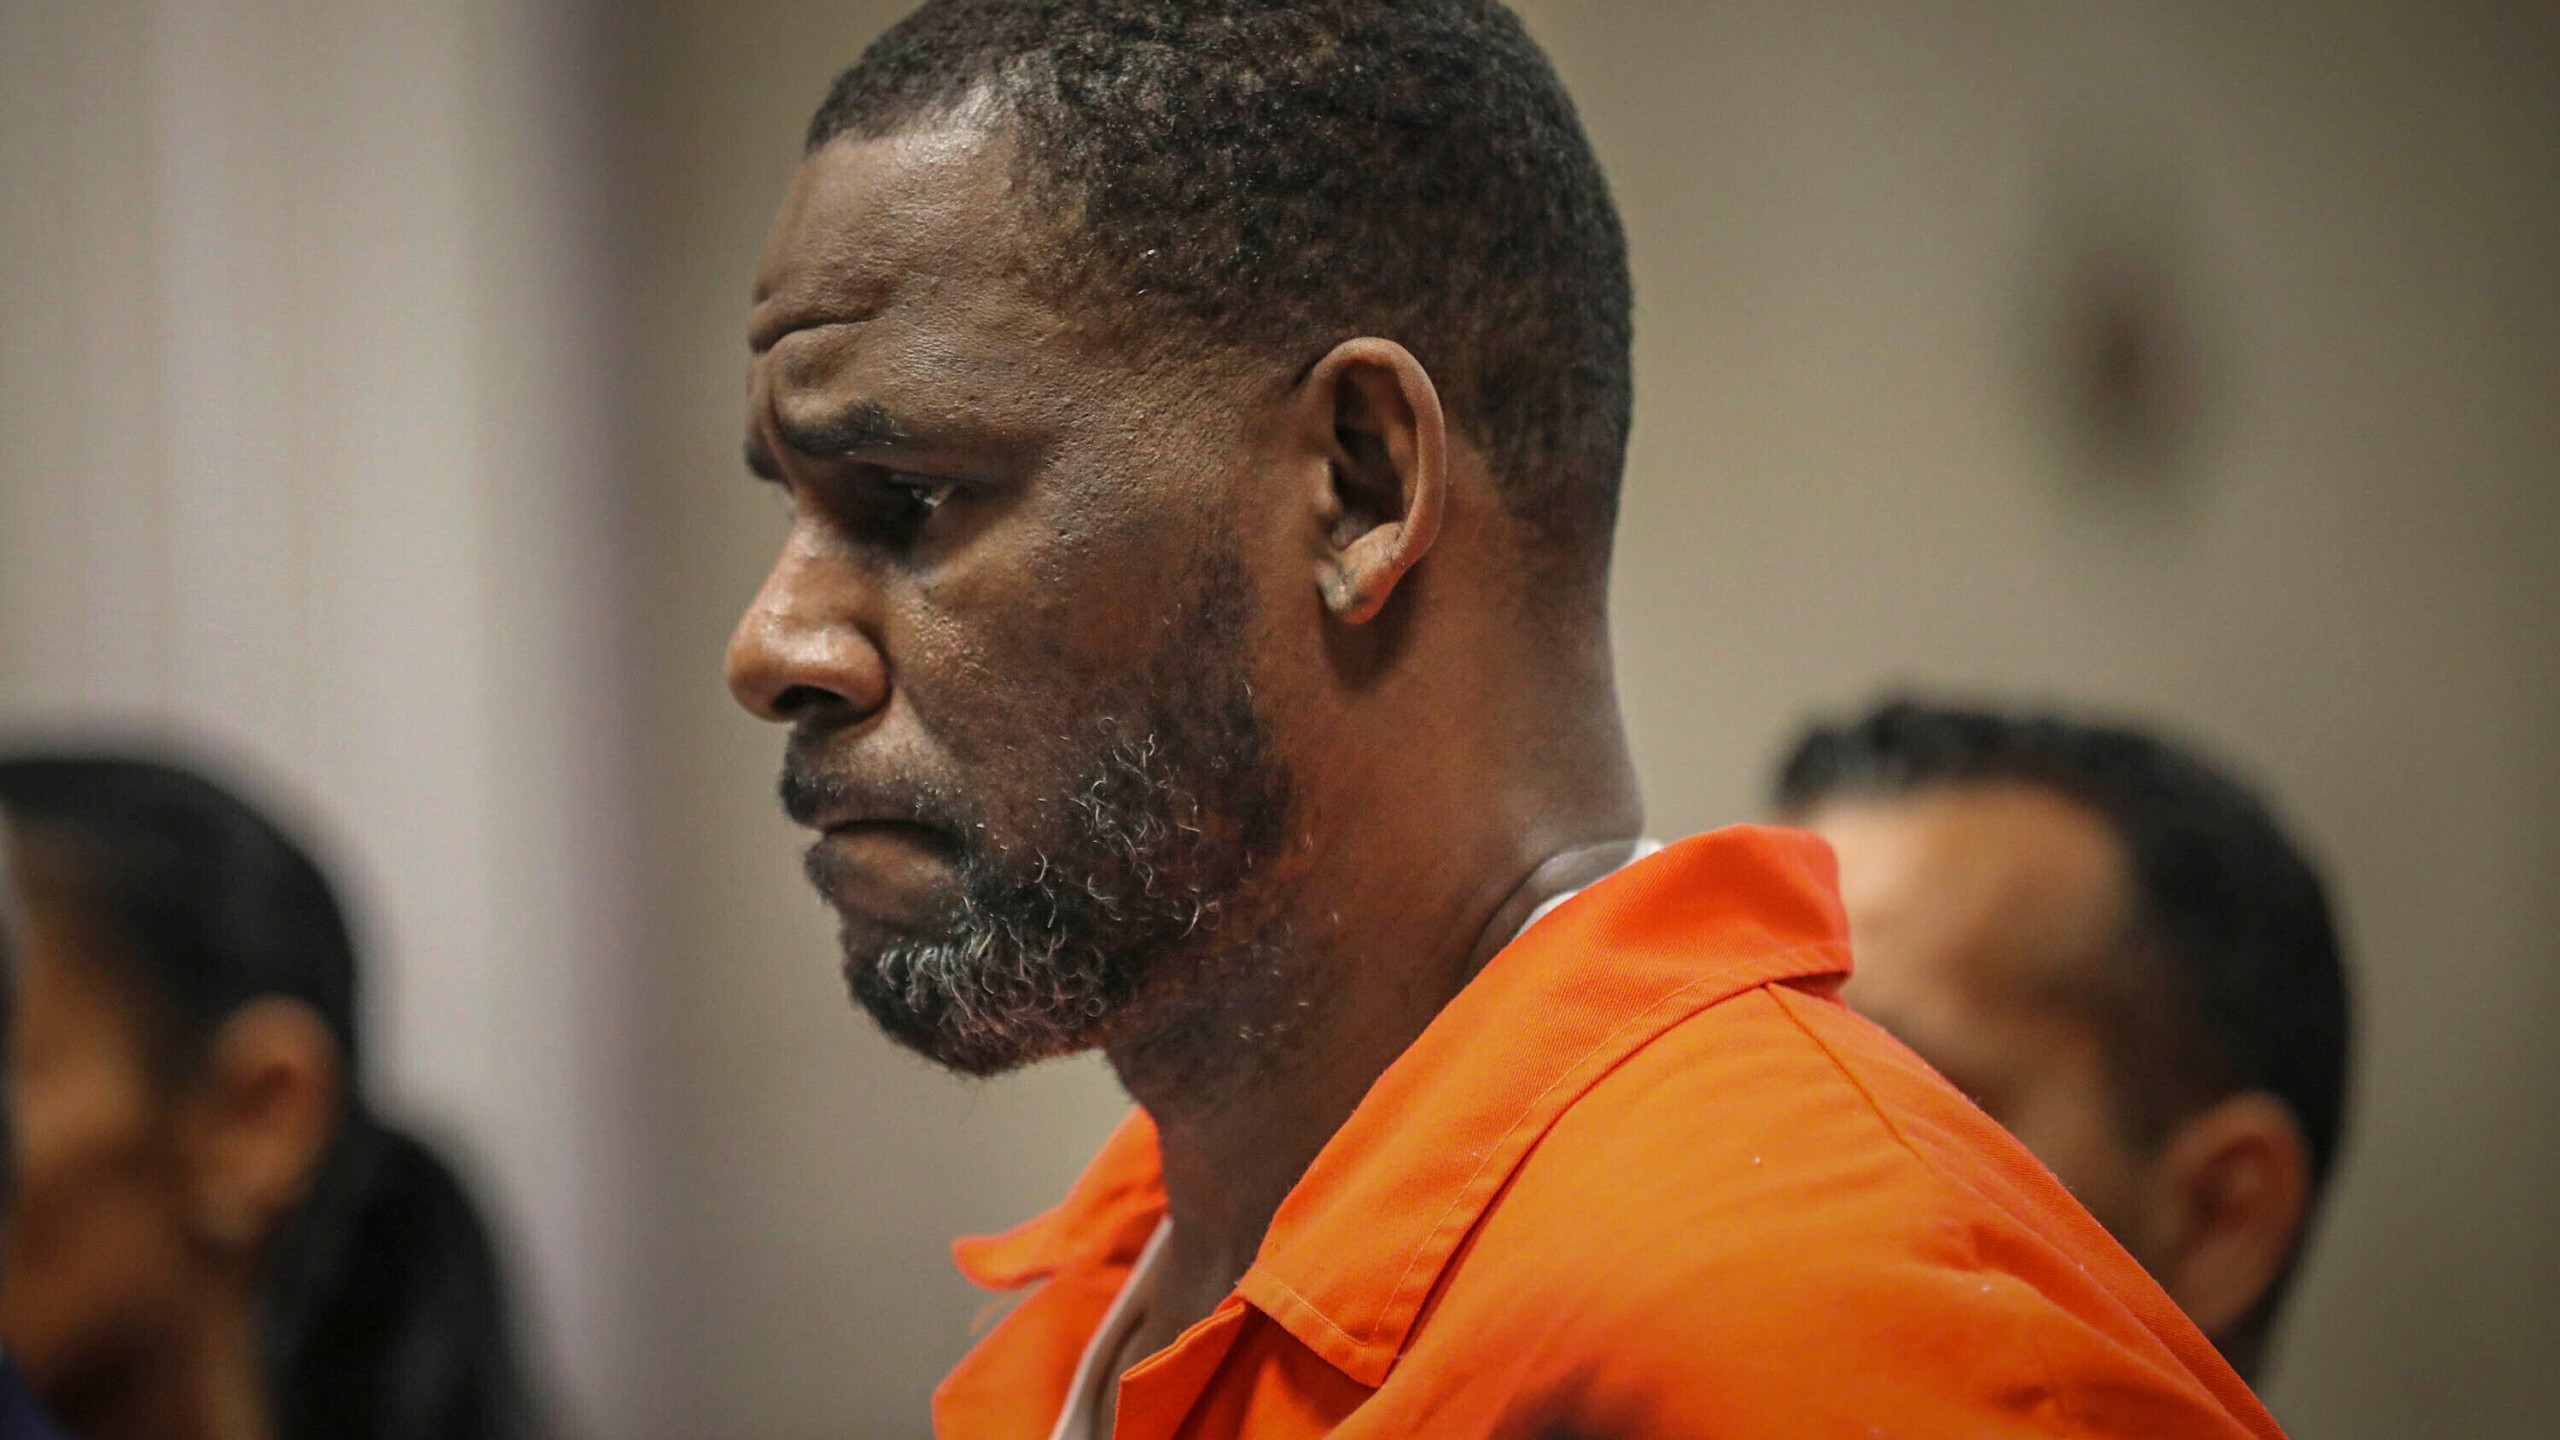 In this Sept. 17, 2019, photo, R. Kelly appears during a hearing at the Leighton Criminal Courthouse in Chicago. (Antonio Perez/Chicago Tribune via AP, Pool)